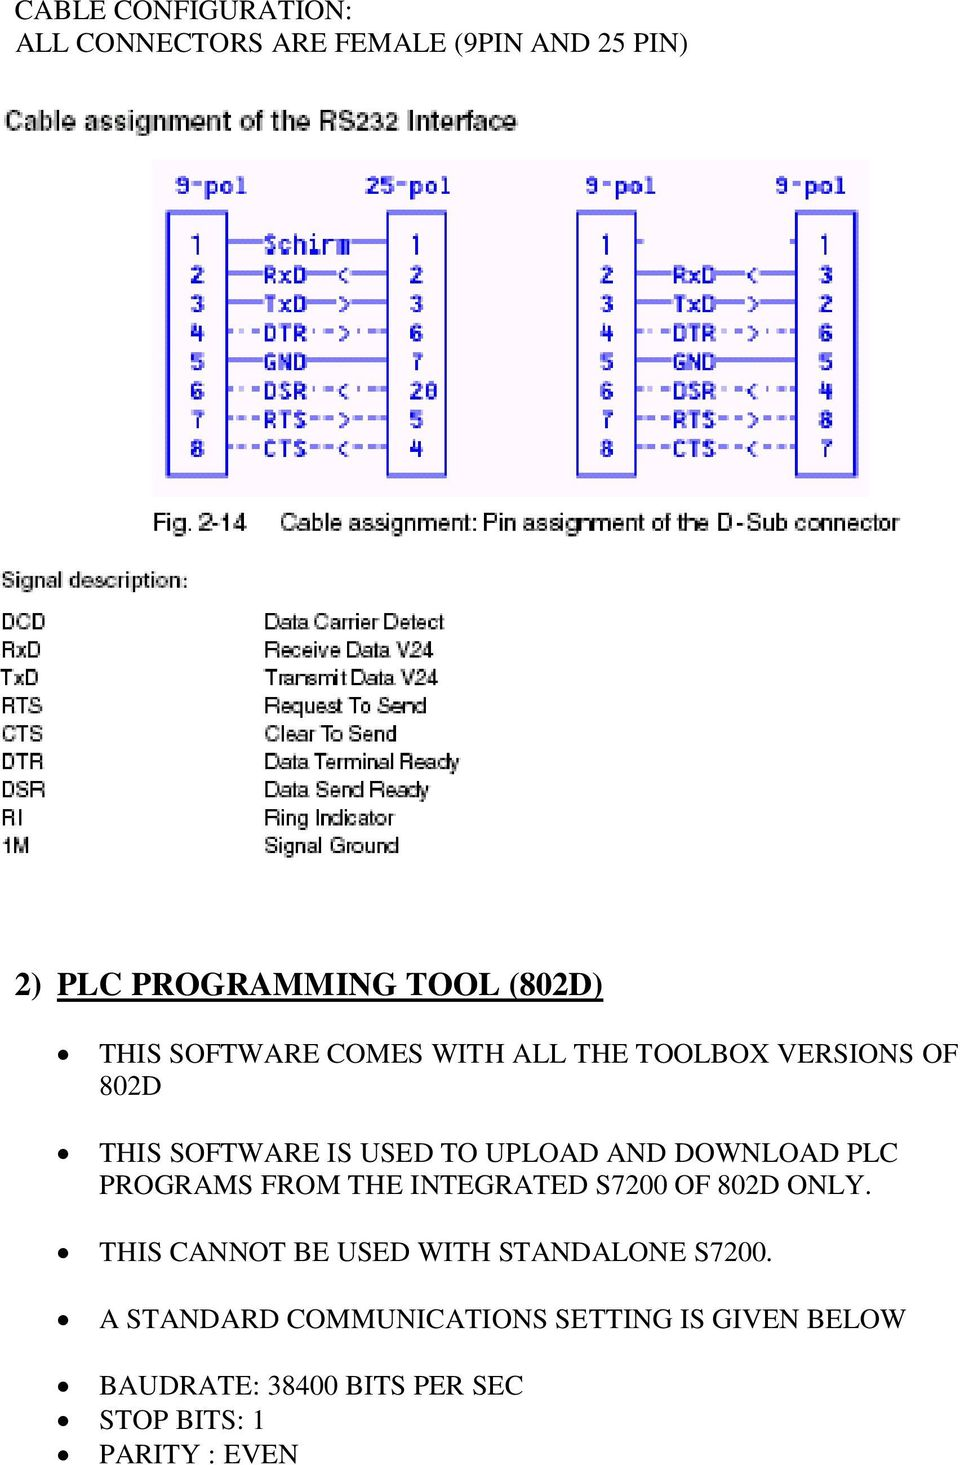 A MANUAL ON SIEMENS SOFTWARE AND CABLE CONFIGURATIONS THIS